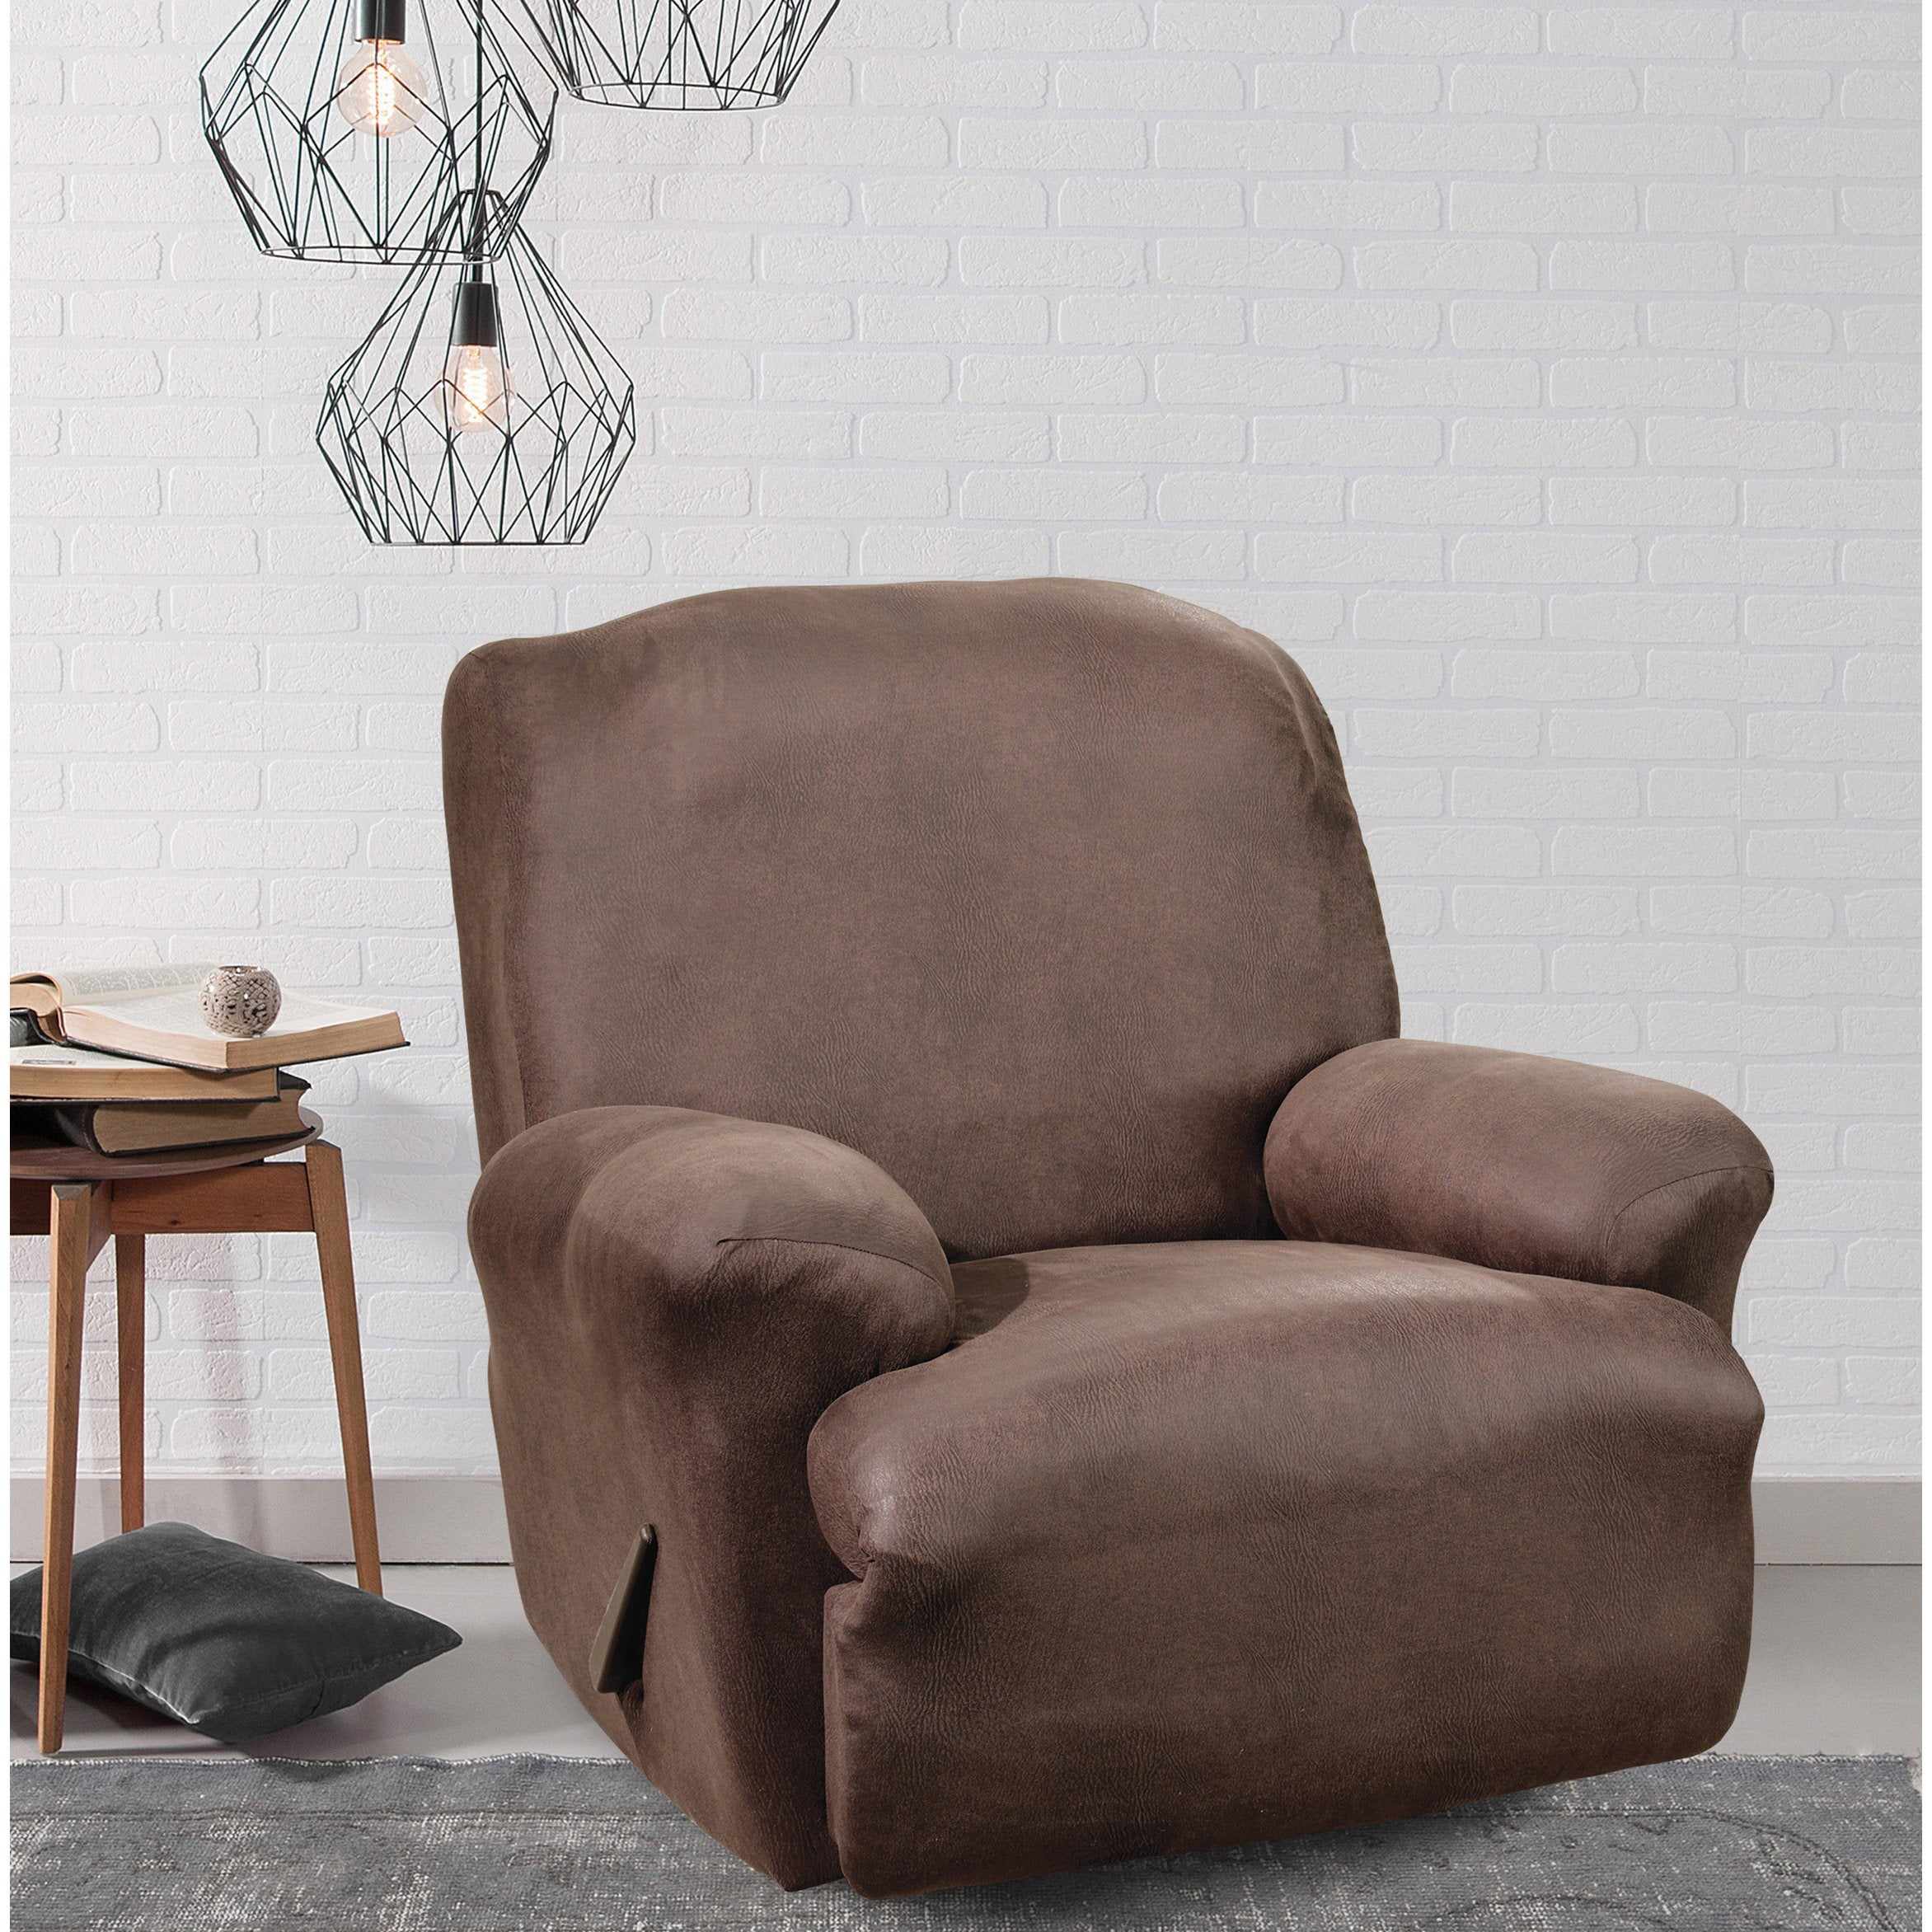 covers slipcovers recliner for cute recliners leather chairs slipcover outdoor games